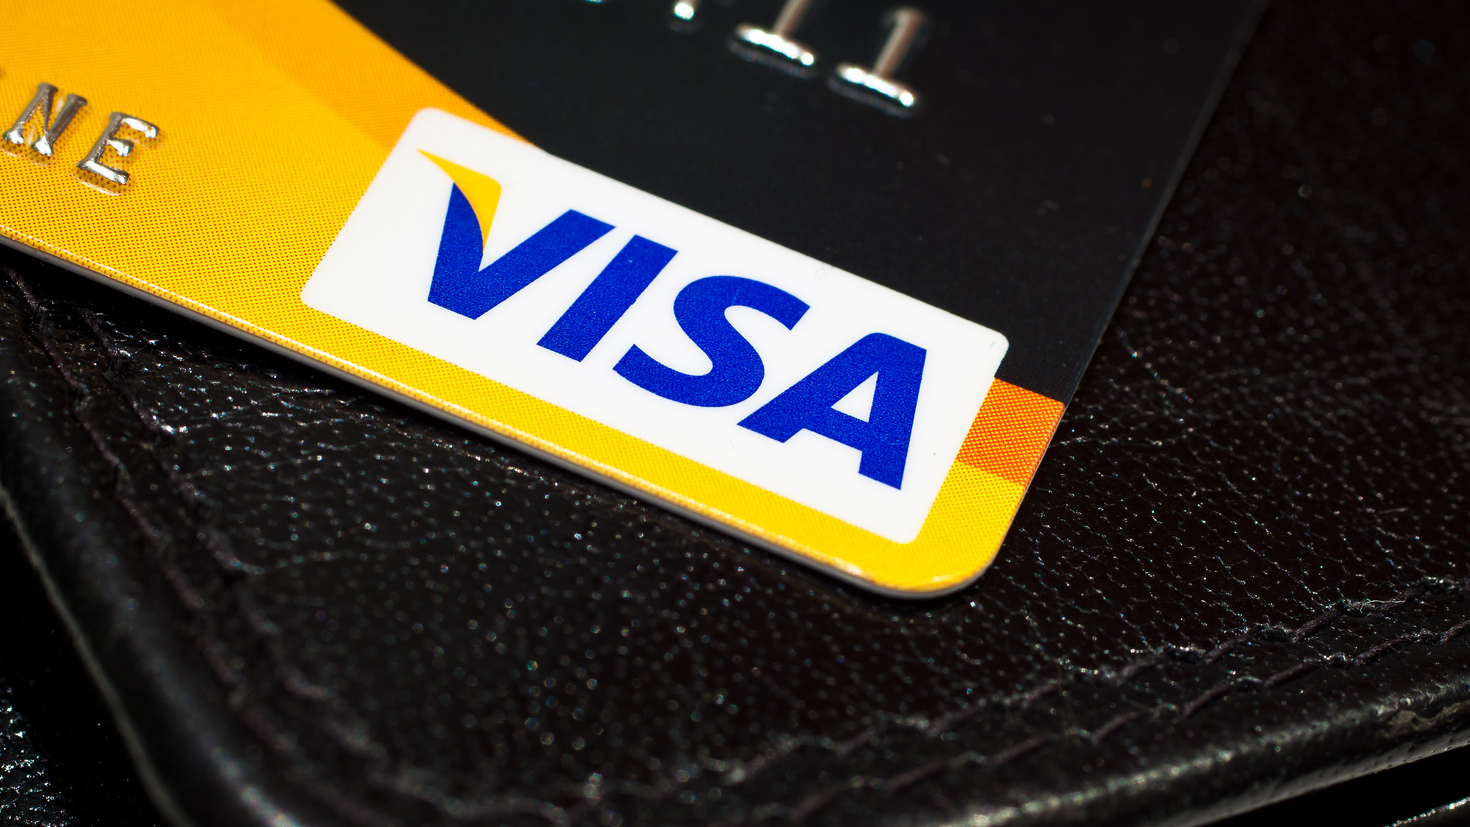 Visa Is Experimenting With Biometric Payment Systems